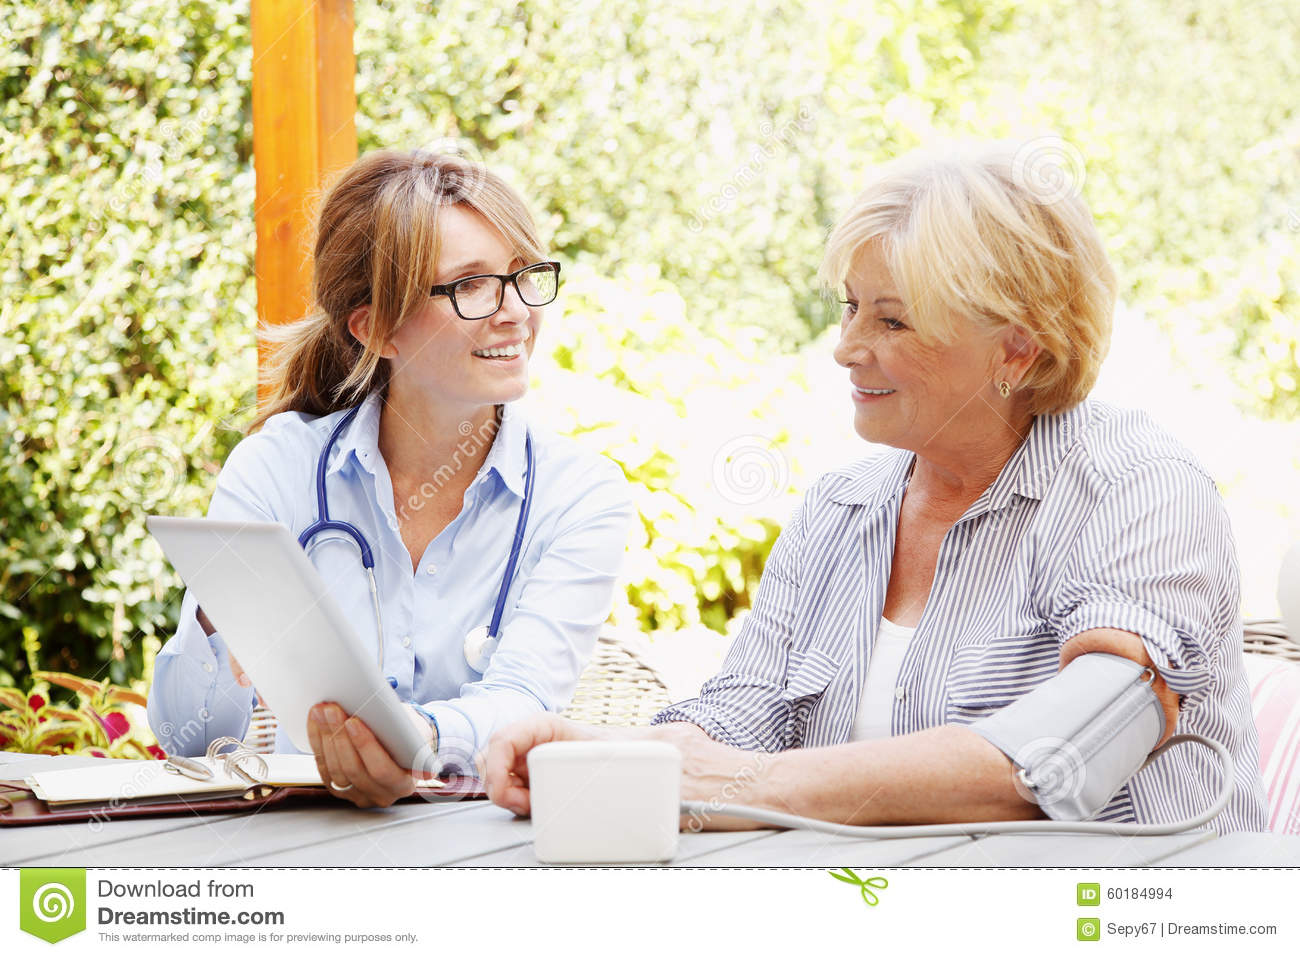 Home Healthcare Stock Photo Image 60184994